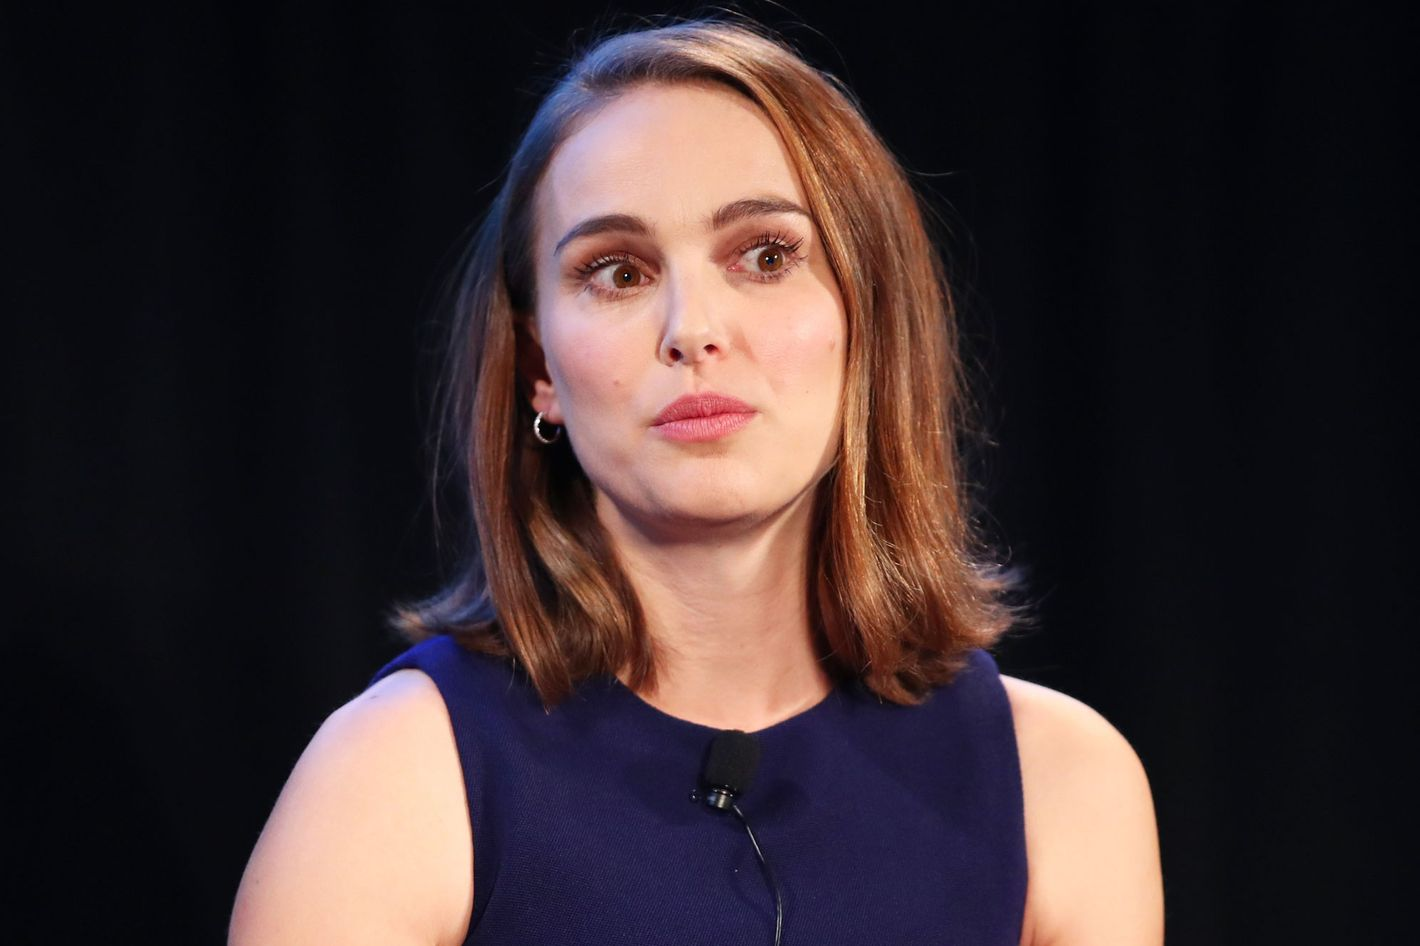 Actress Natalie Portman unveils her harassment stories amid series sexual harassment allegations